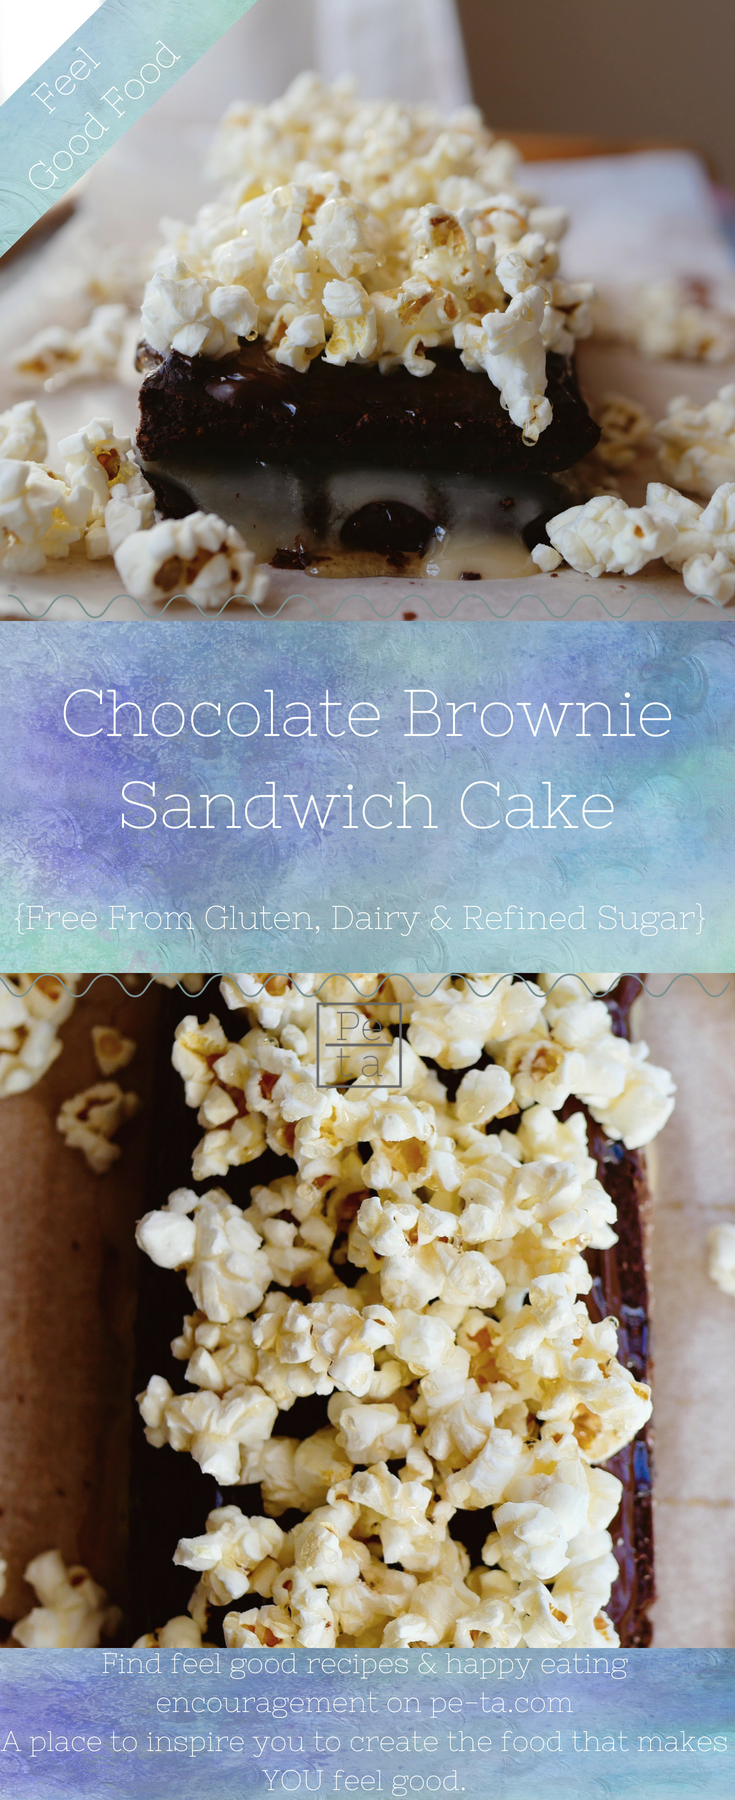 Free From Chocolate Brownie Cake - Gluten Free, Dairy Free & Refined Sugar Free